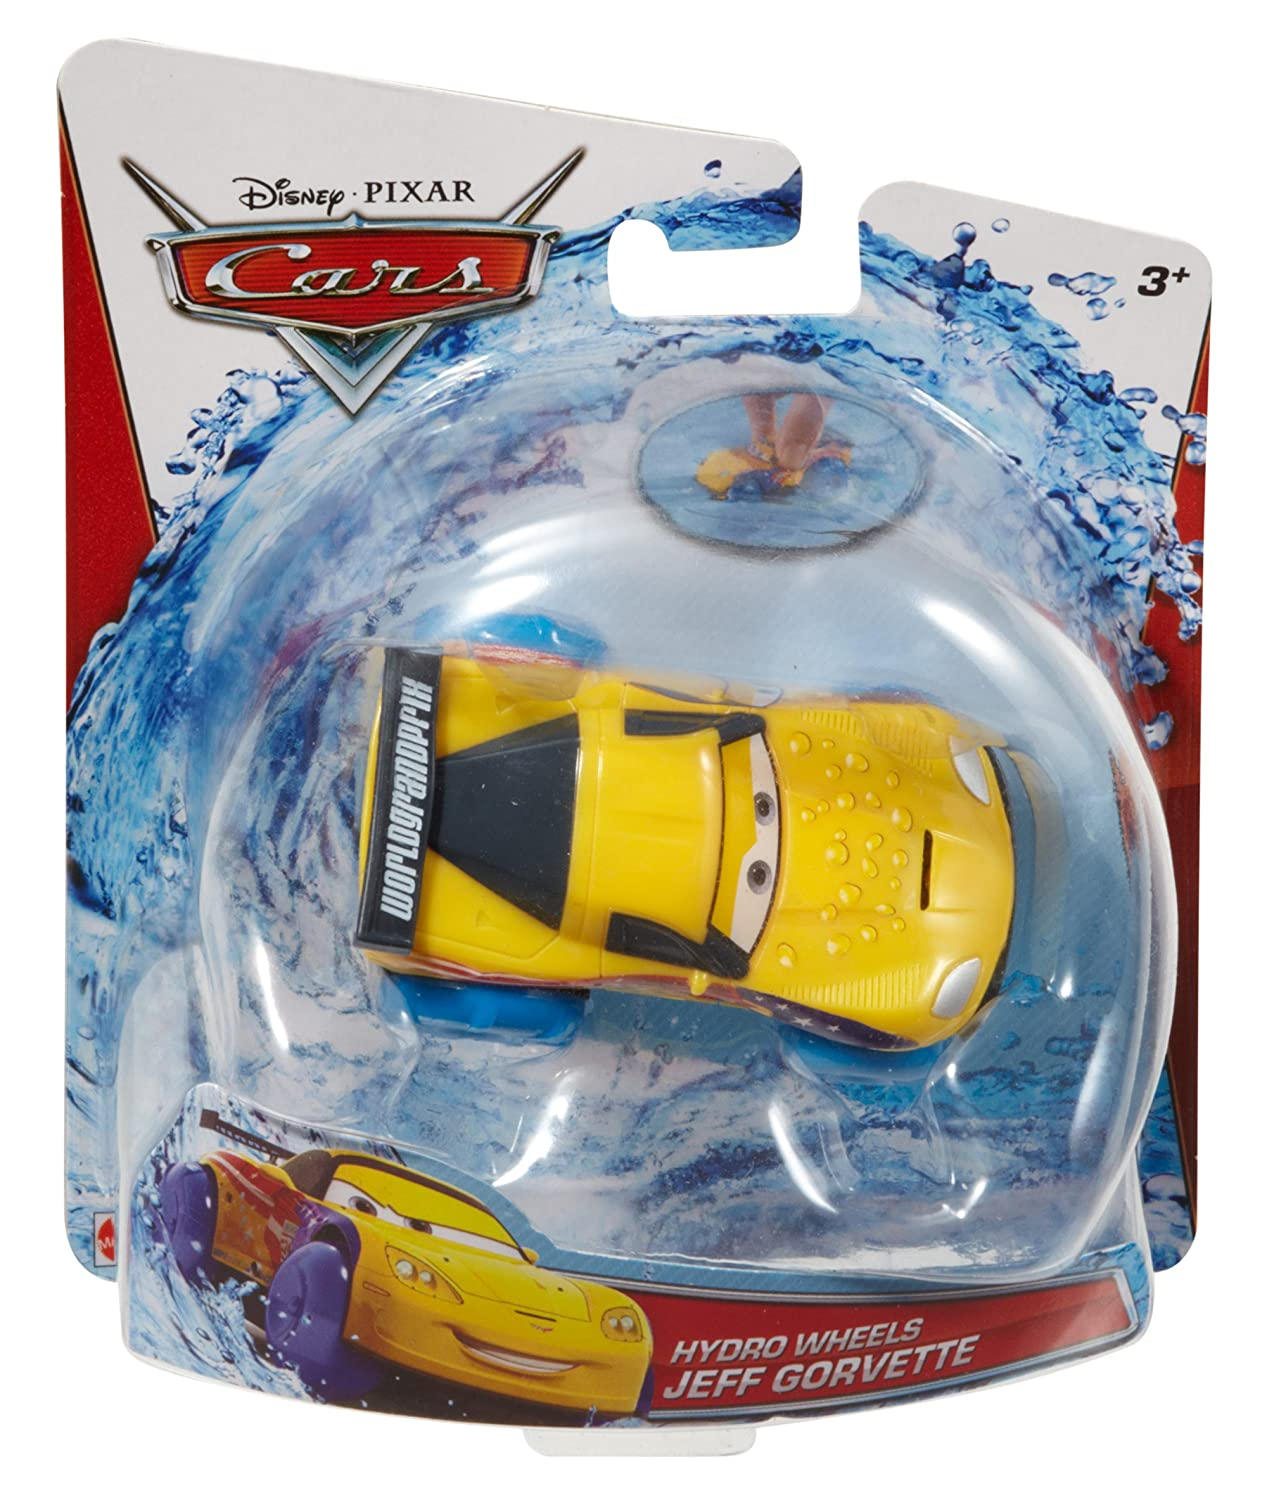 Amazon.com: Mattel Disney/Pixar Cars, Hydro Wheels, Jeff Gorvette Bath Vehicle: Toys & Games